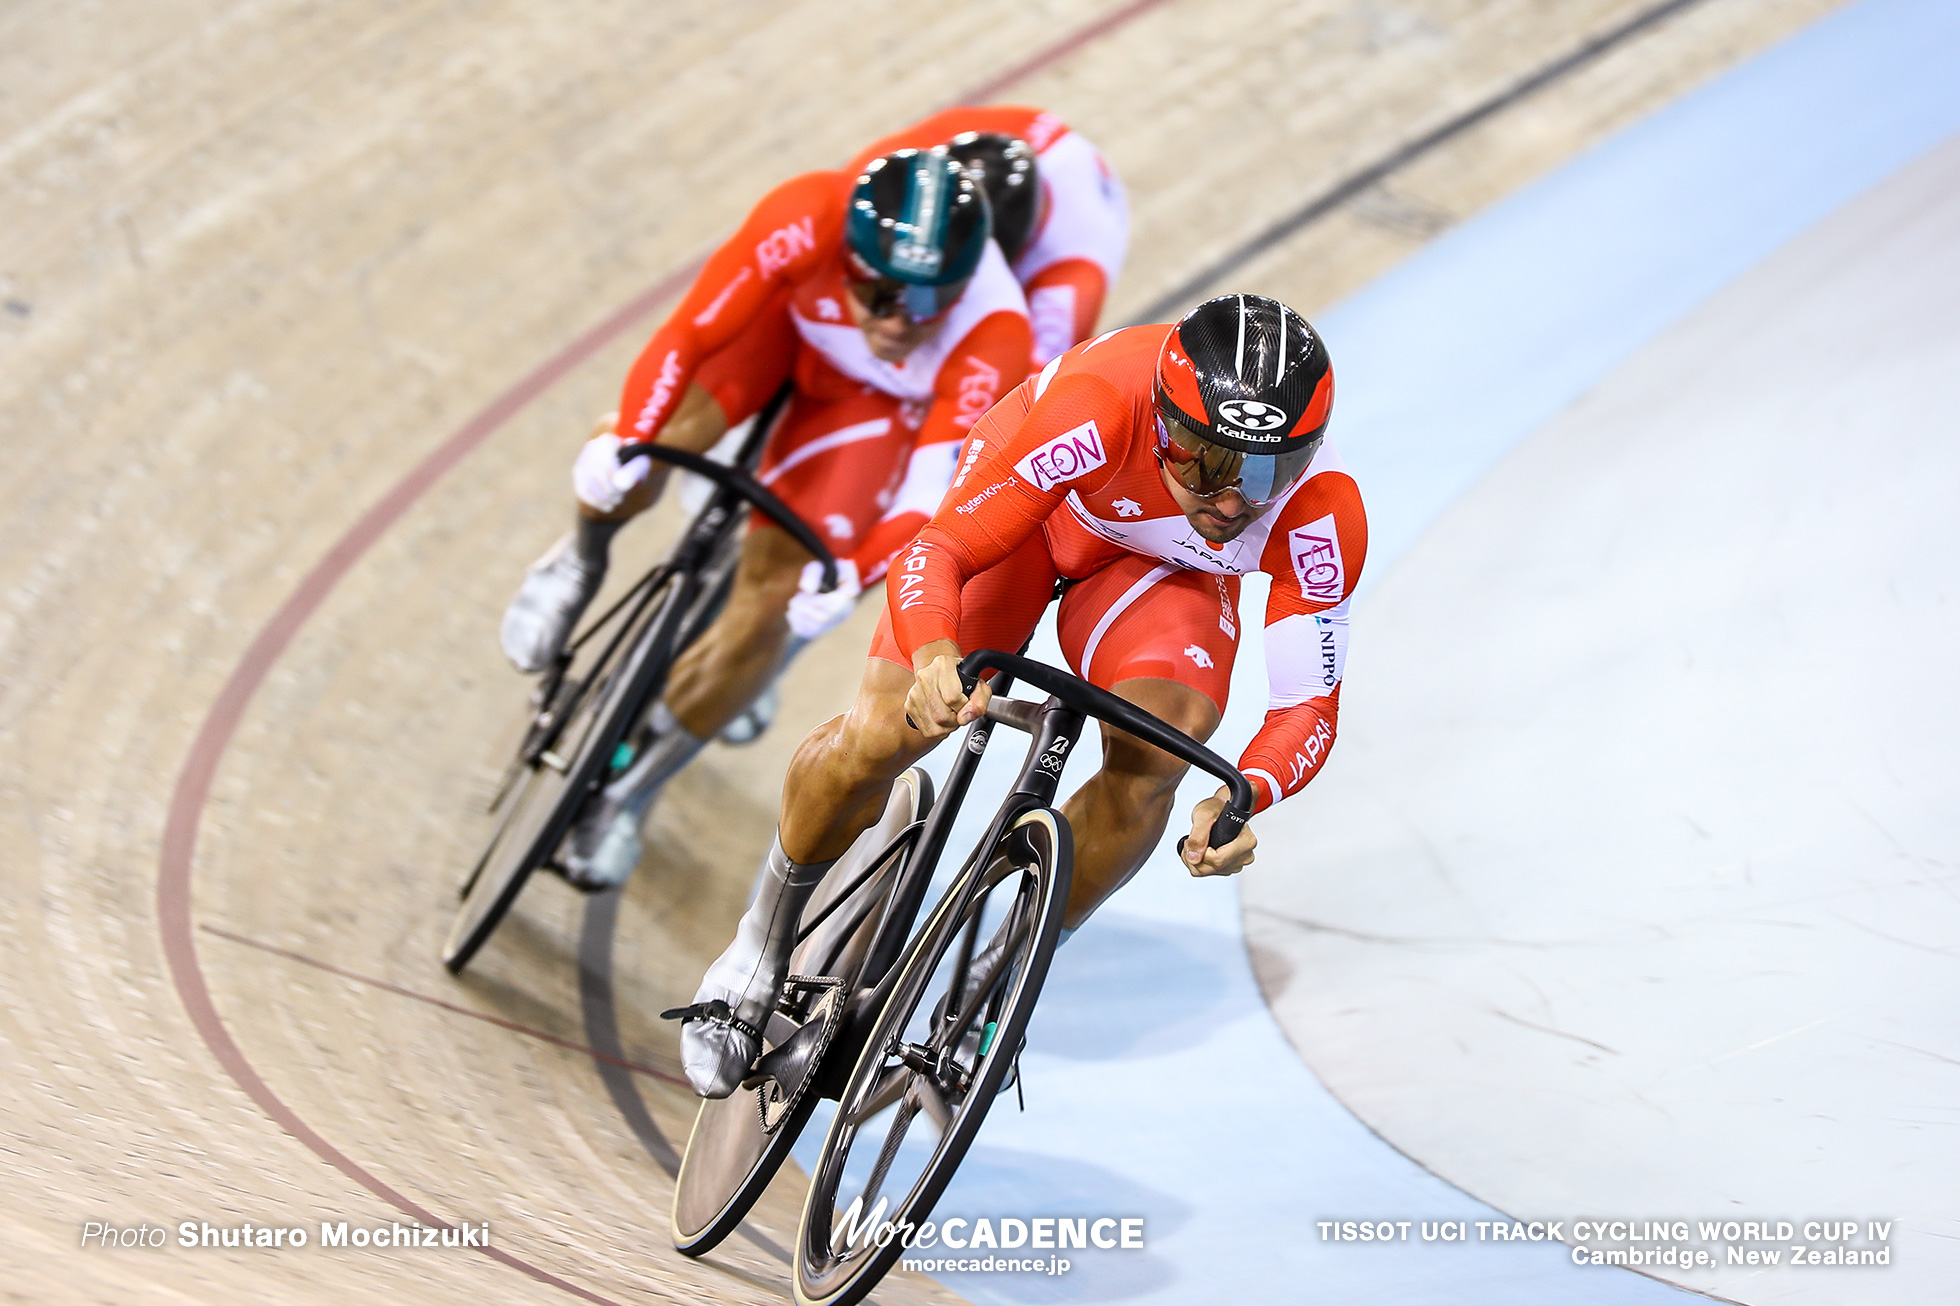 Men's Team Sprint / TISSOT UCI TRACK CYCLING WORLD CUP IV, Cambridge, New Zealand